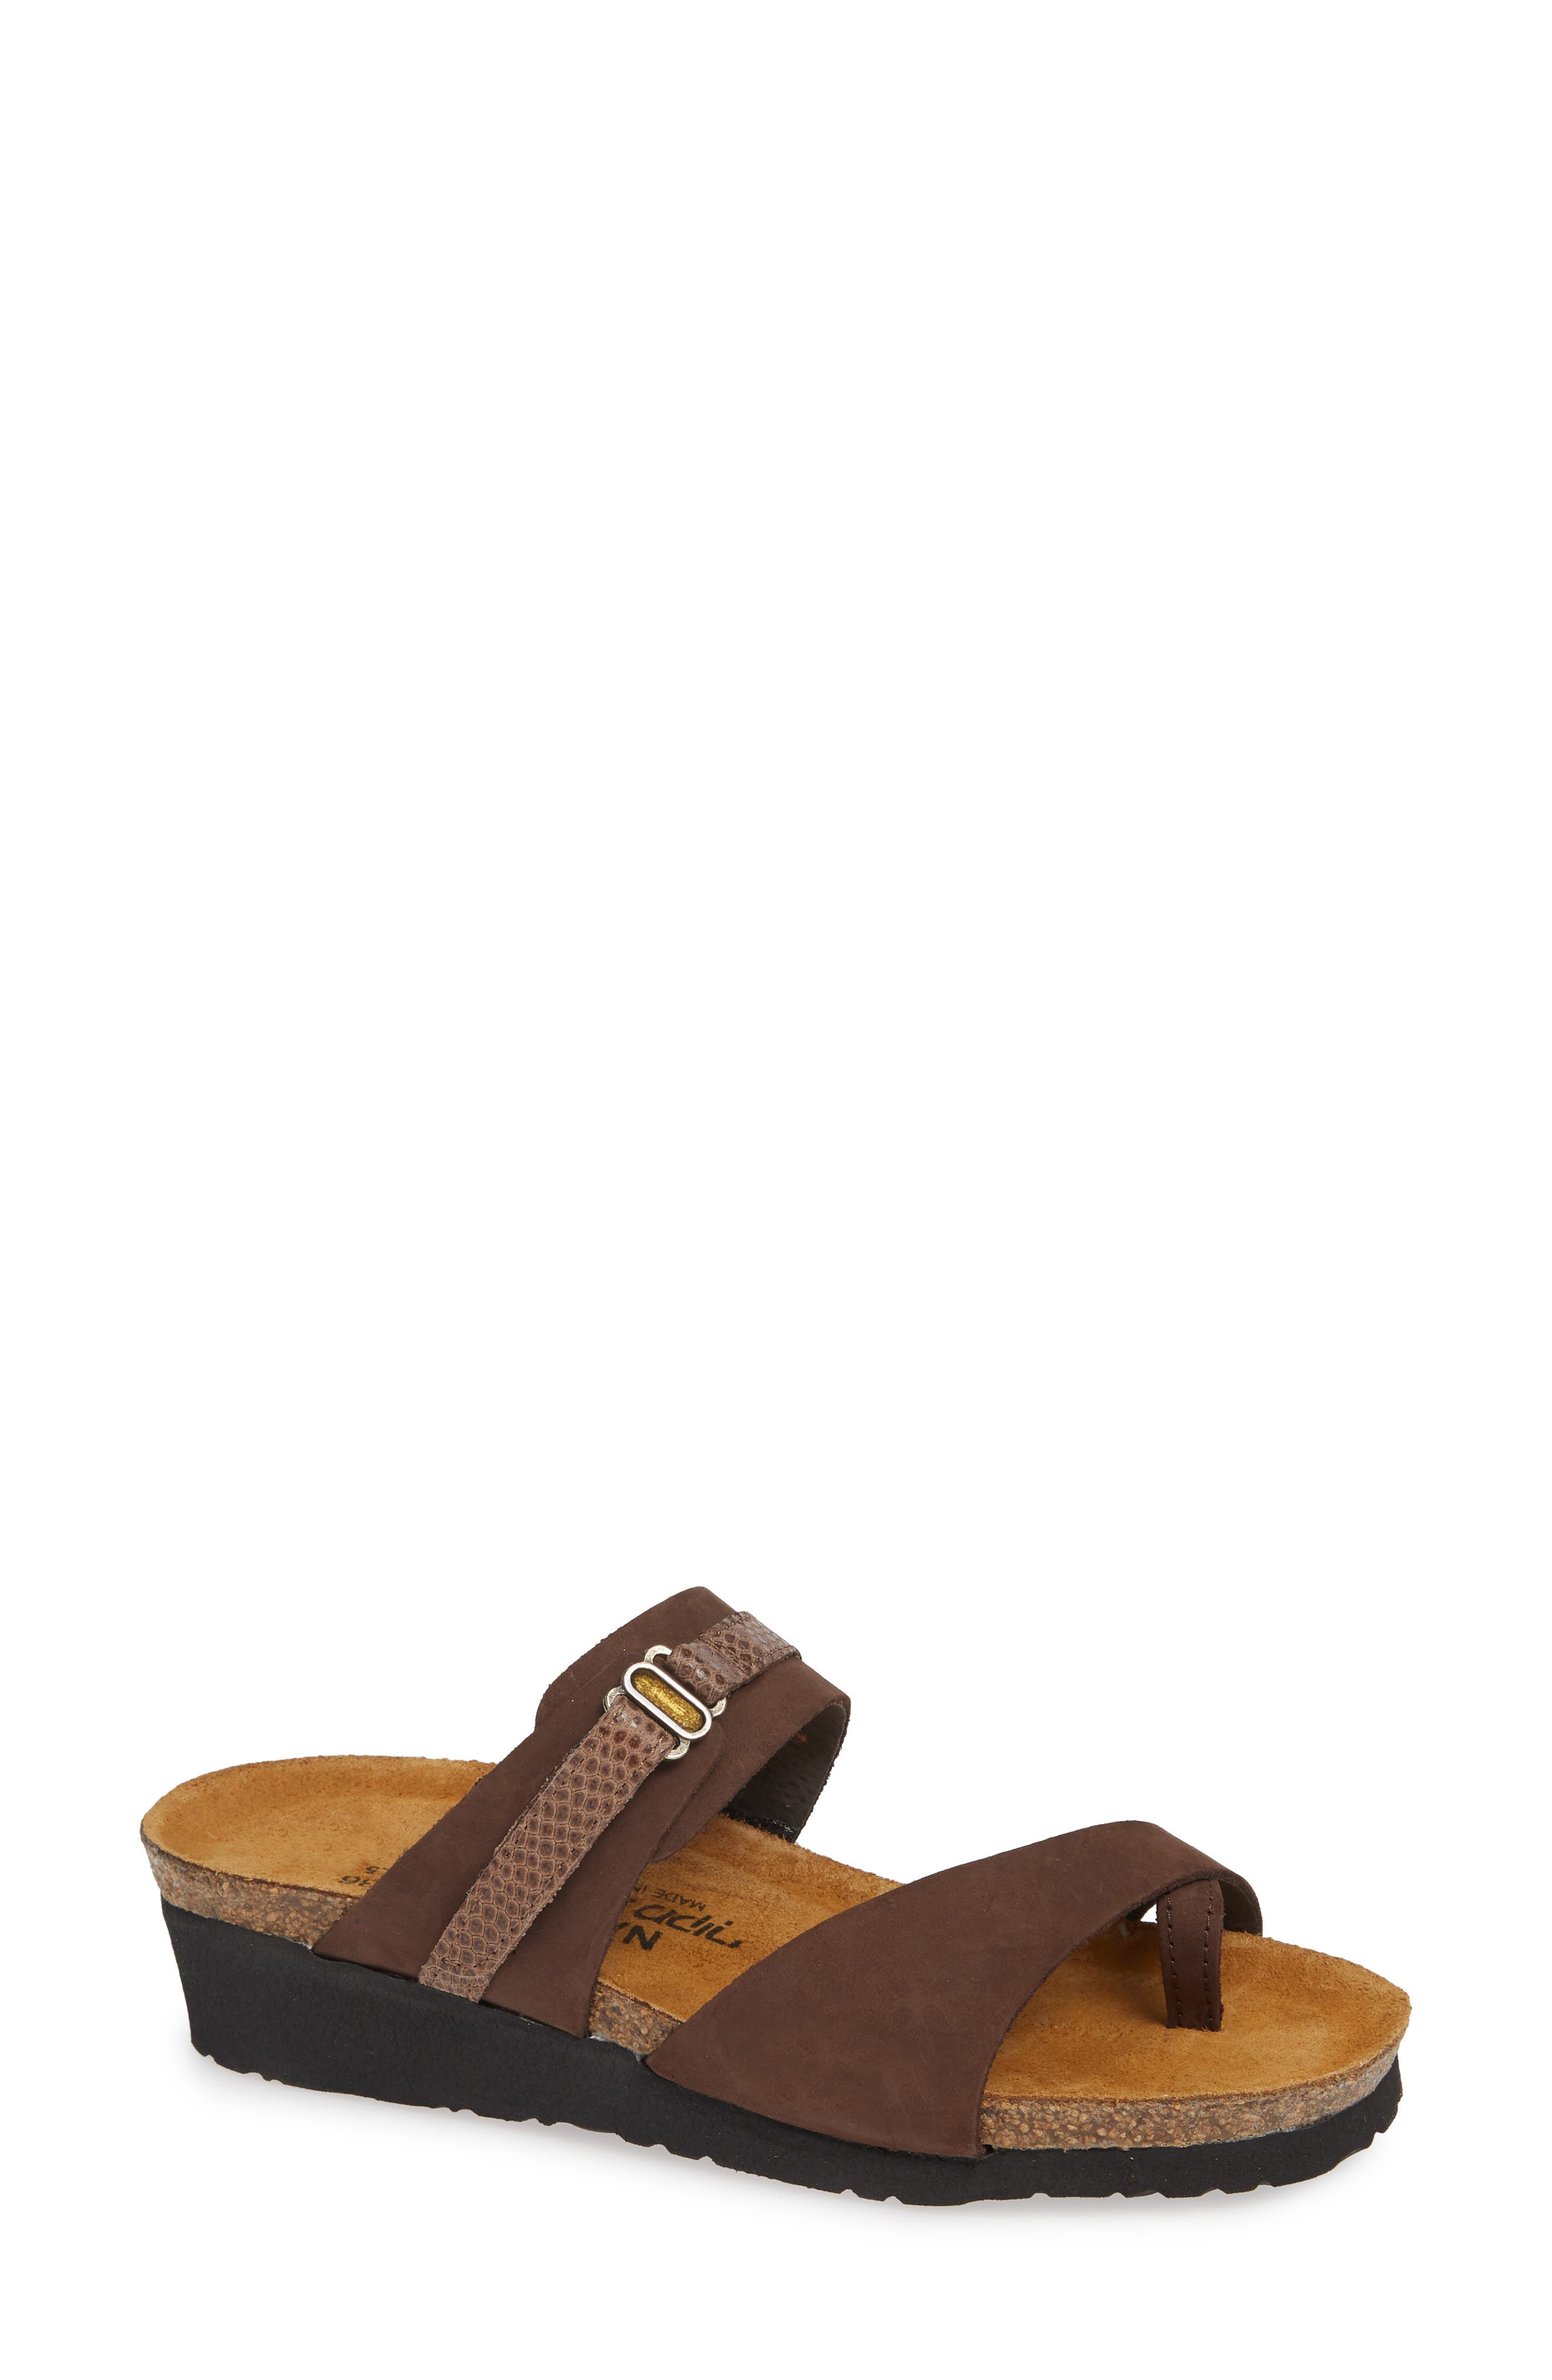 Jessica Sandal,                             Main thumbnail 1, color,                             COFFEE BEAN NUBUCK LEATHER